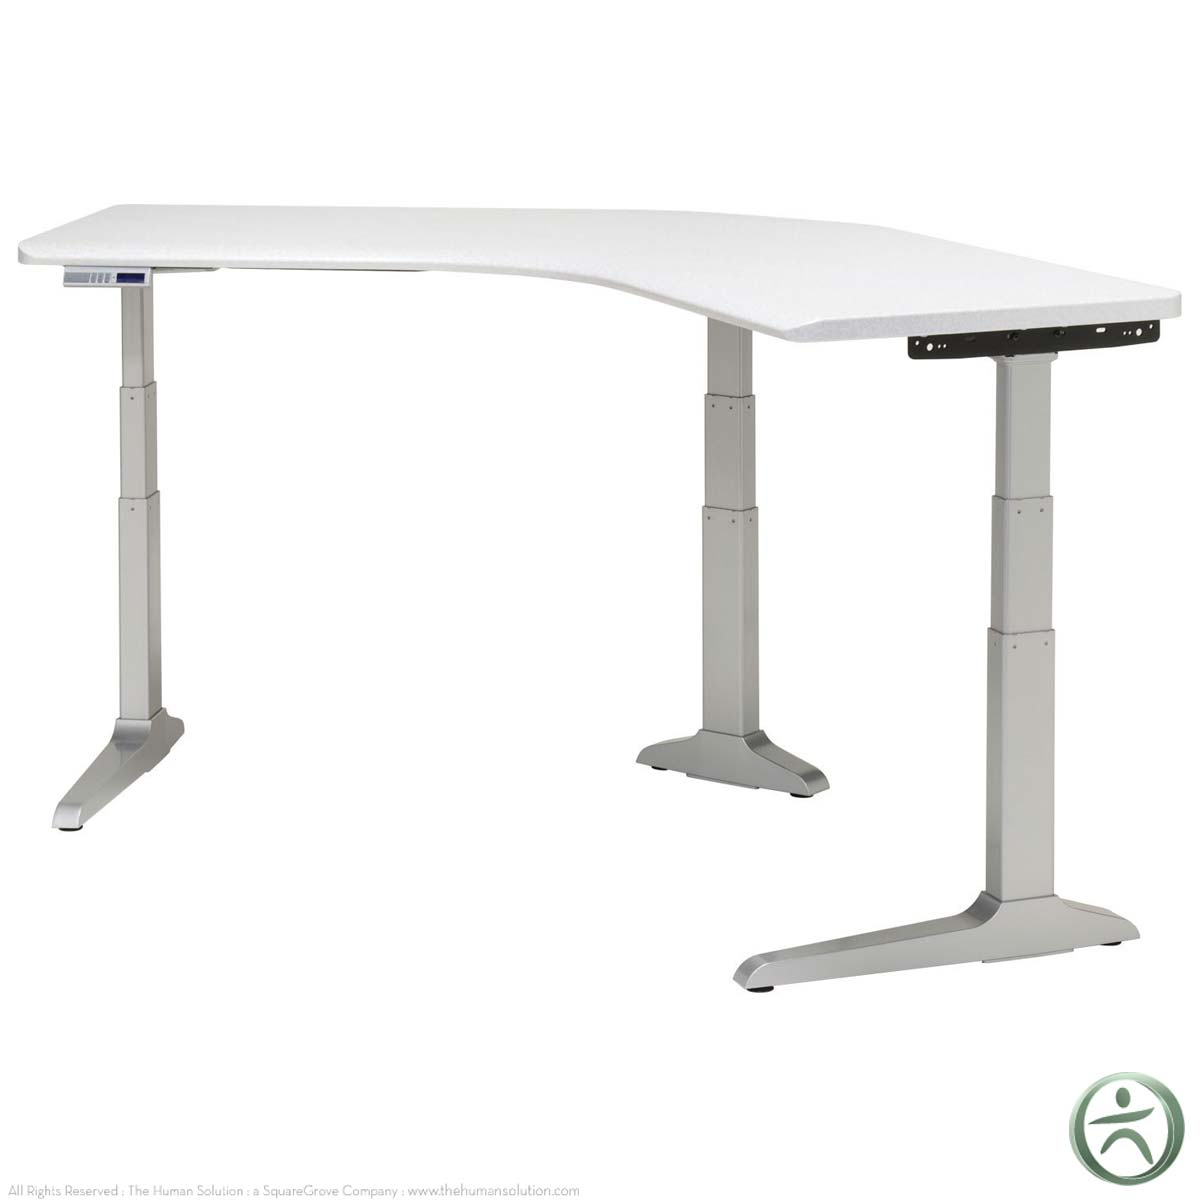 Shop Workrite Sierra HX Desks - Large Equal Corner